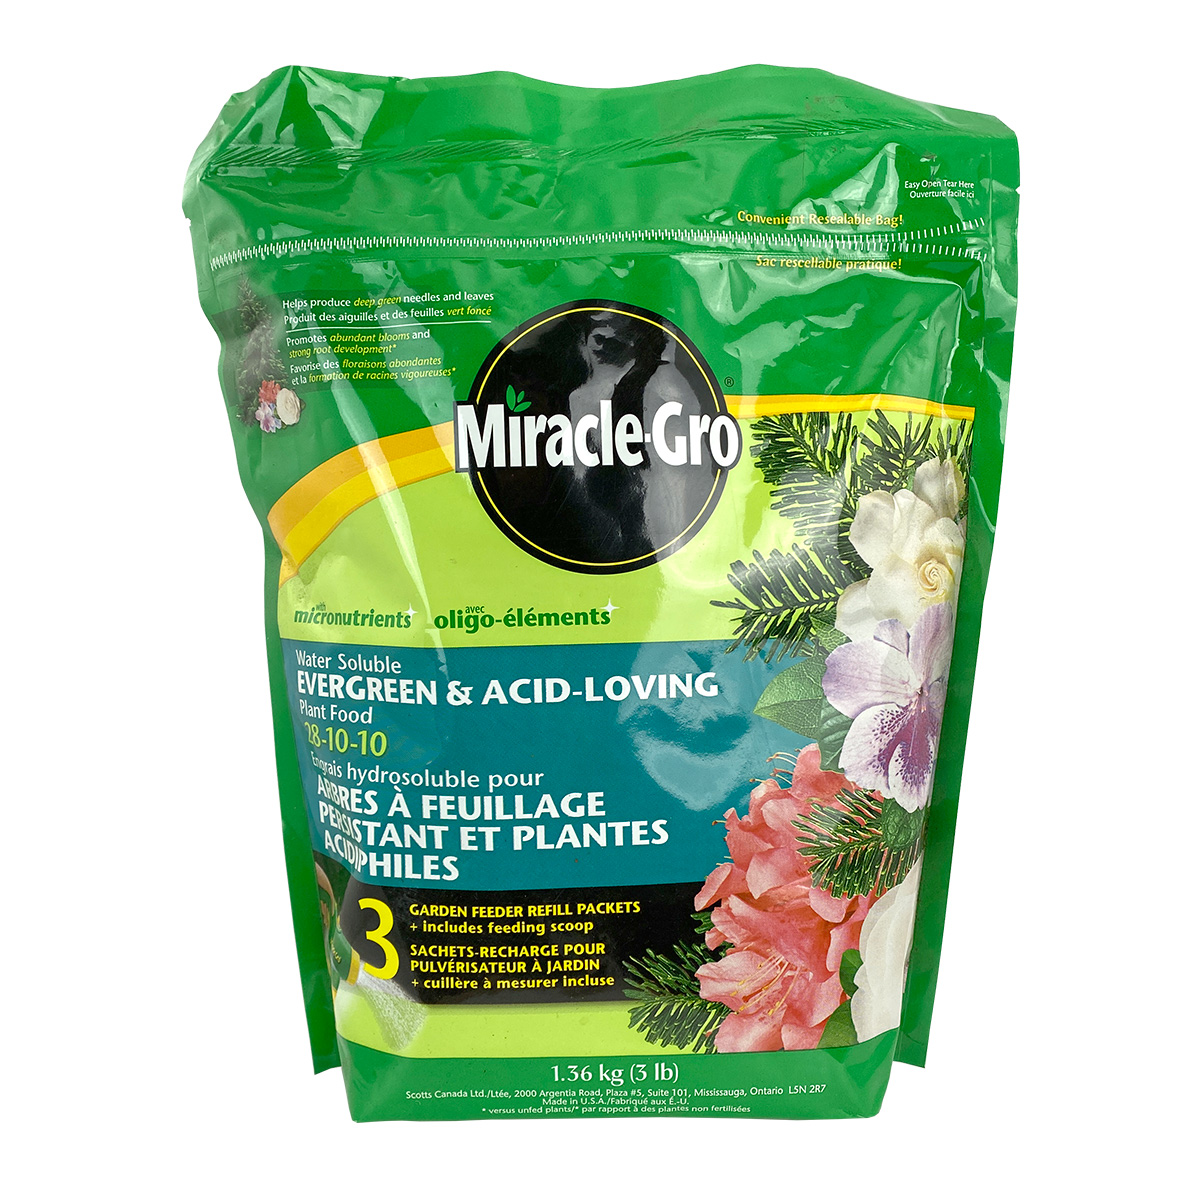 Miracle Gro Evergreen & Acid Loving Plant Food 28-10-10